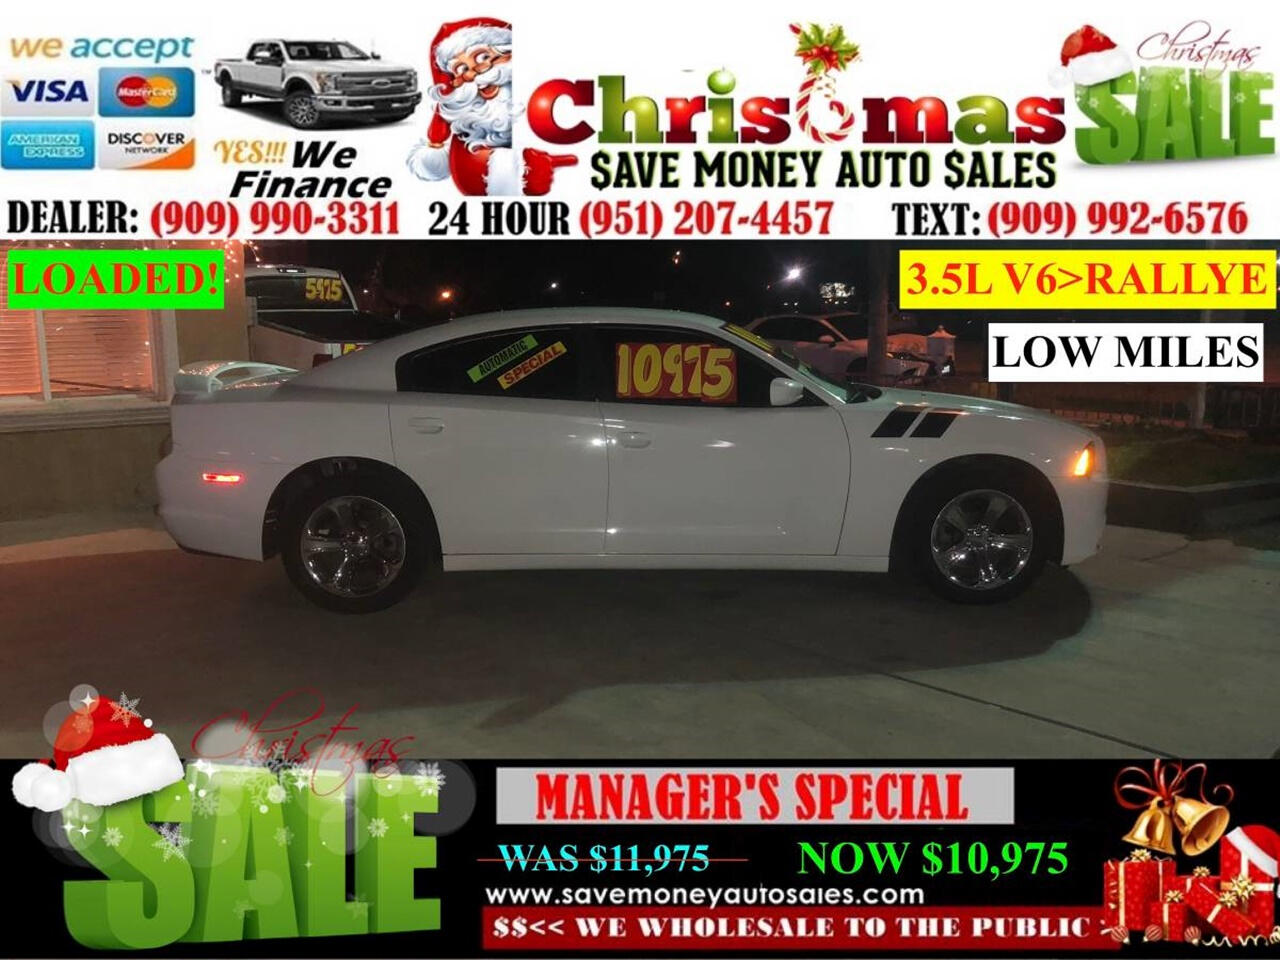 2011 Dodge Charger SE > VERY CLEAN > FULL LEATHER > LOW MILES